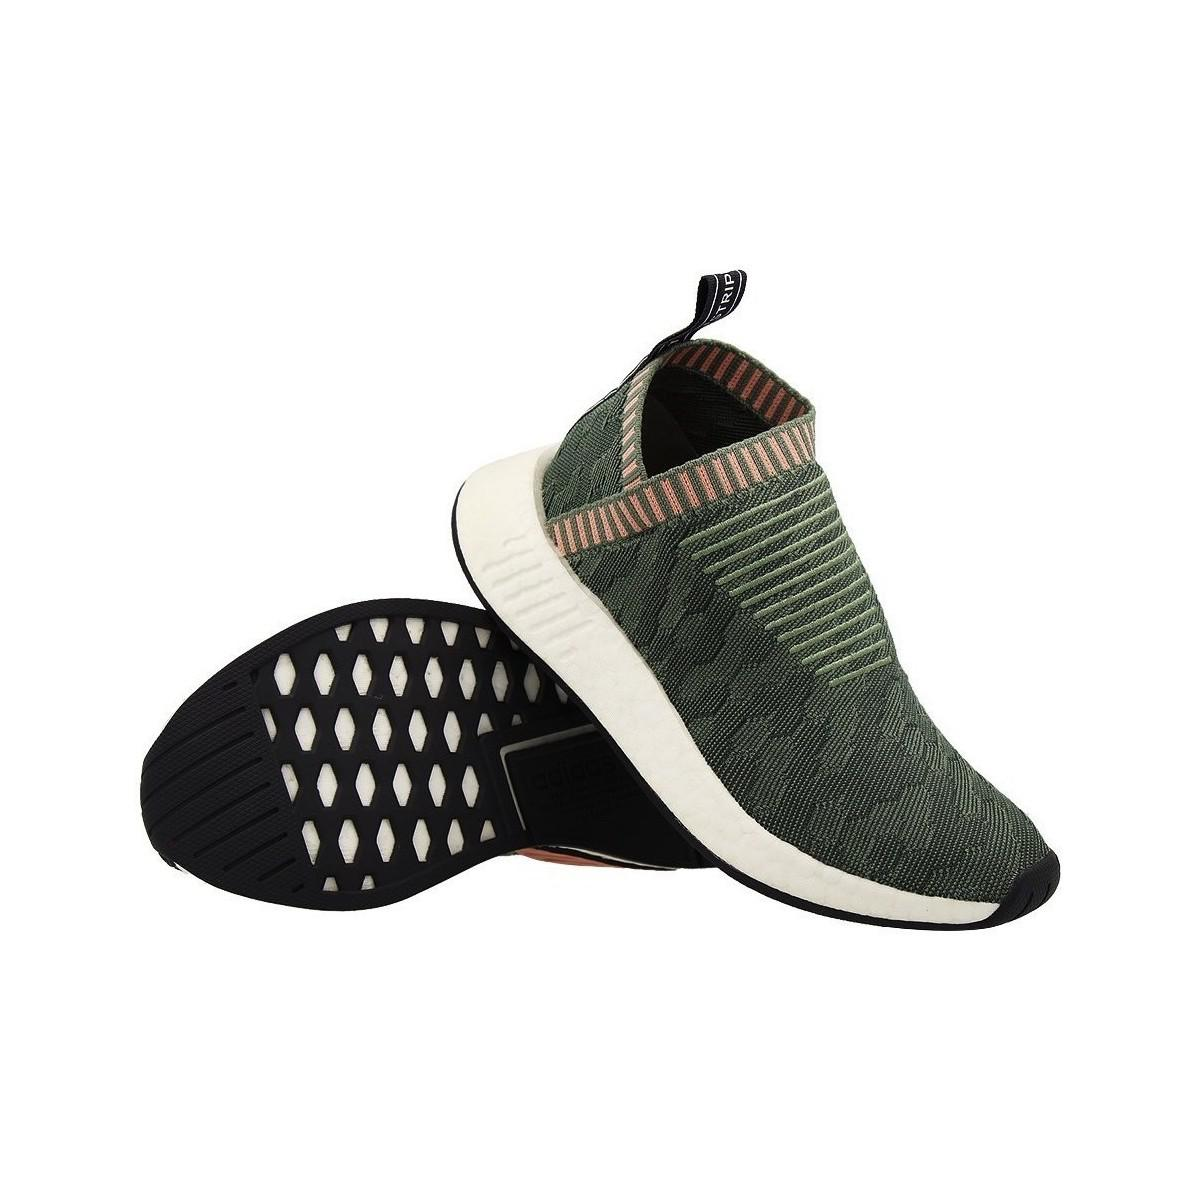 buy online 41aee 8c9d1 Adidas - Nmd Cs2 Primeknit Women s Shoes (trainers) In Green - Lyst. View  fullscreen